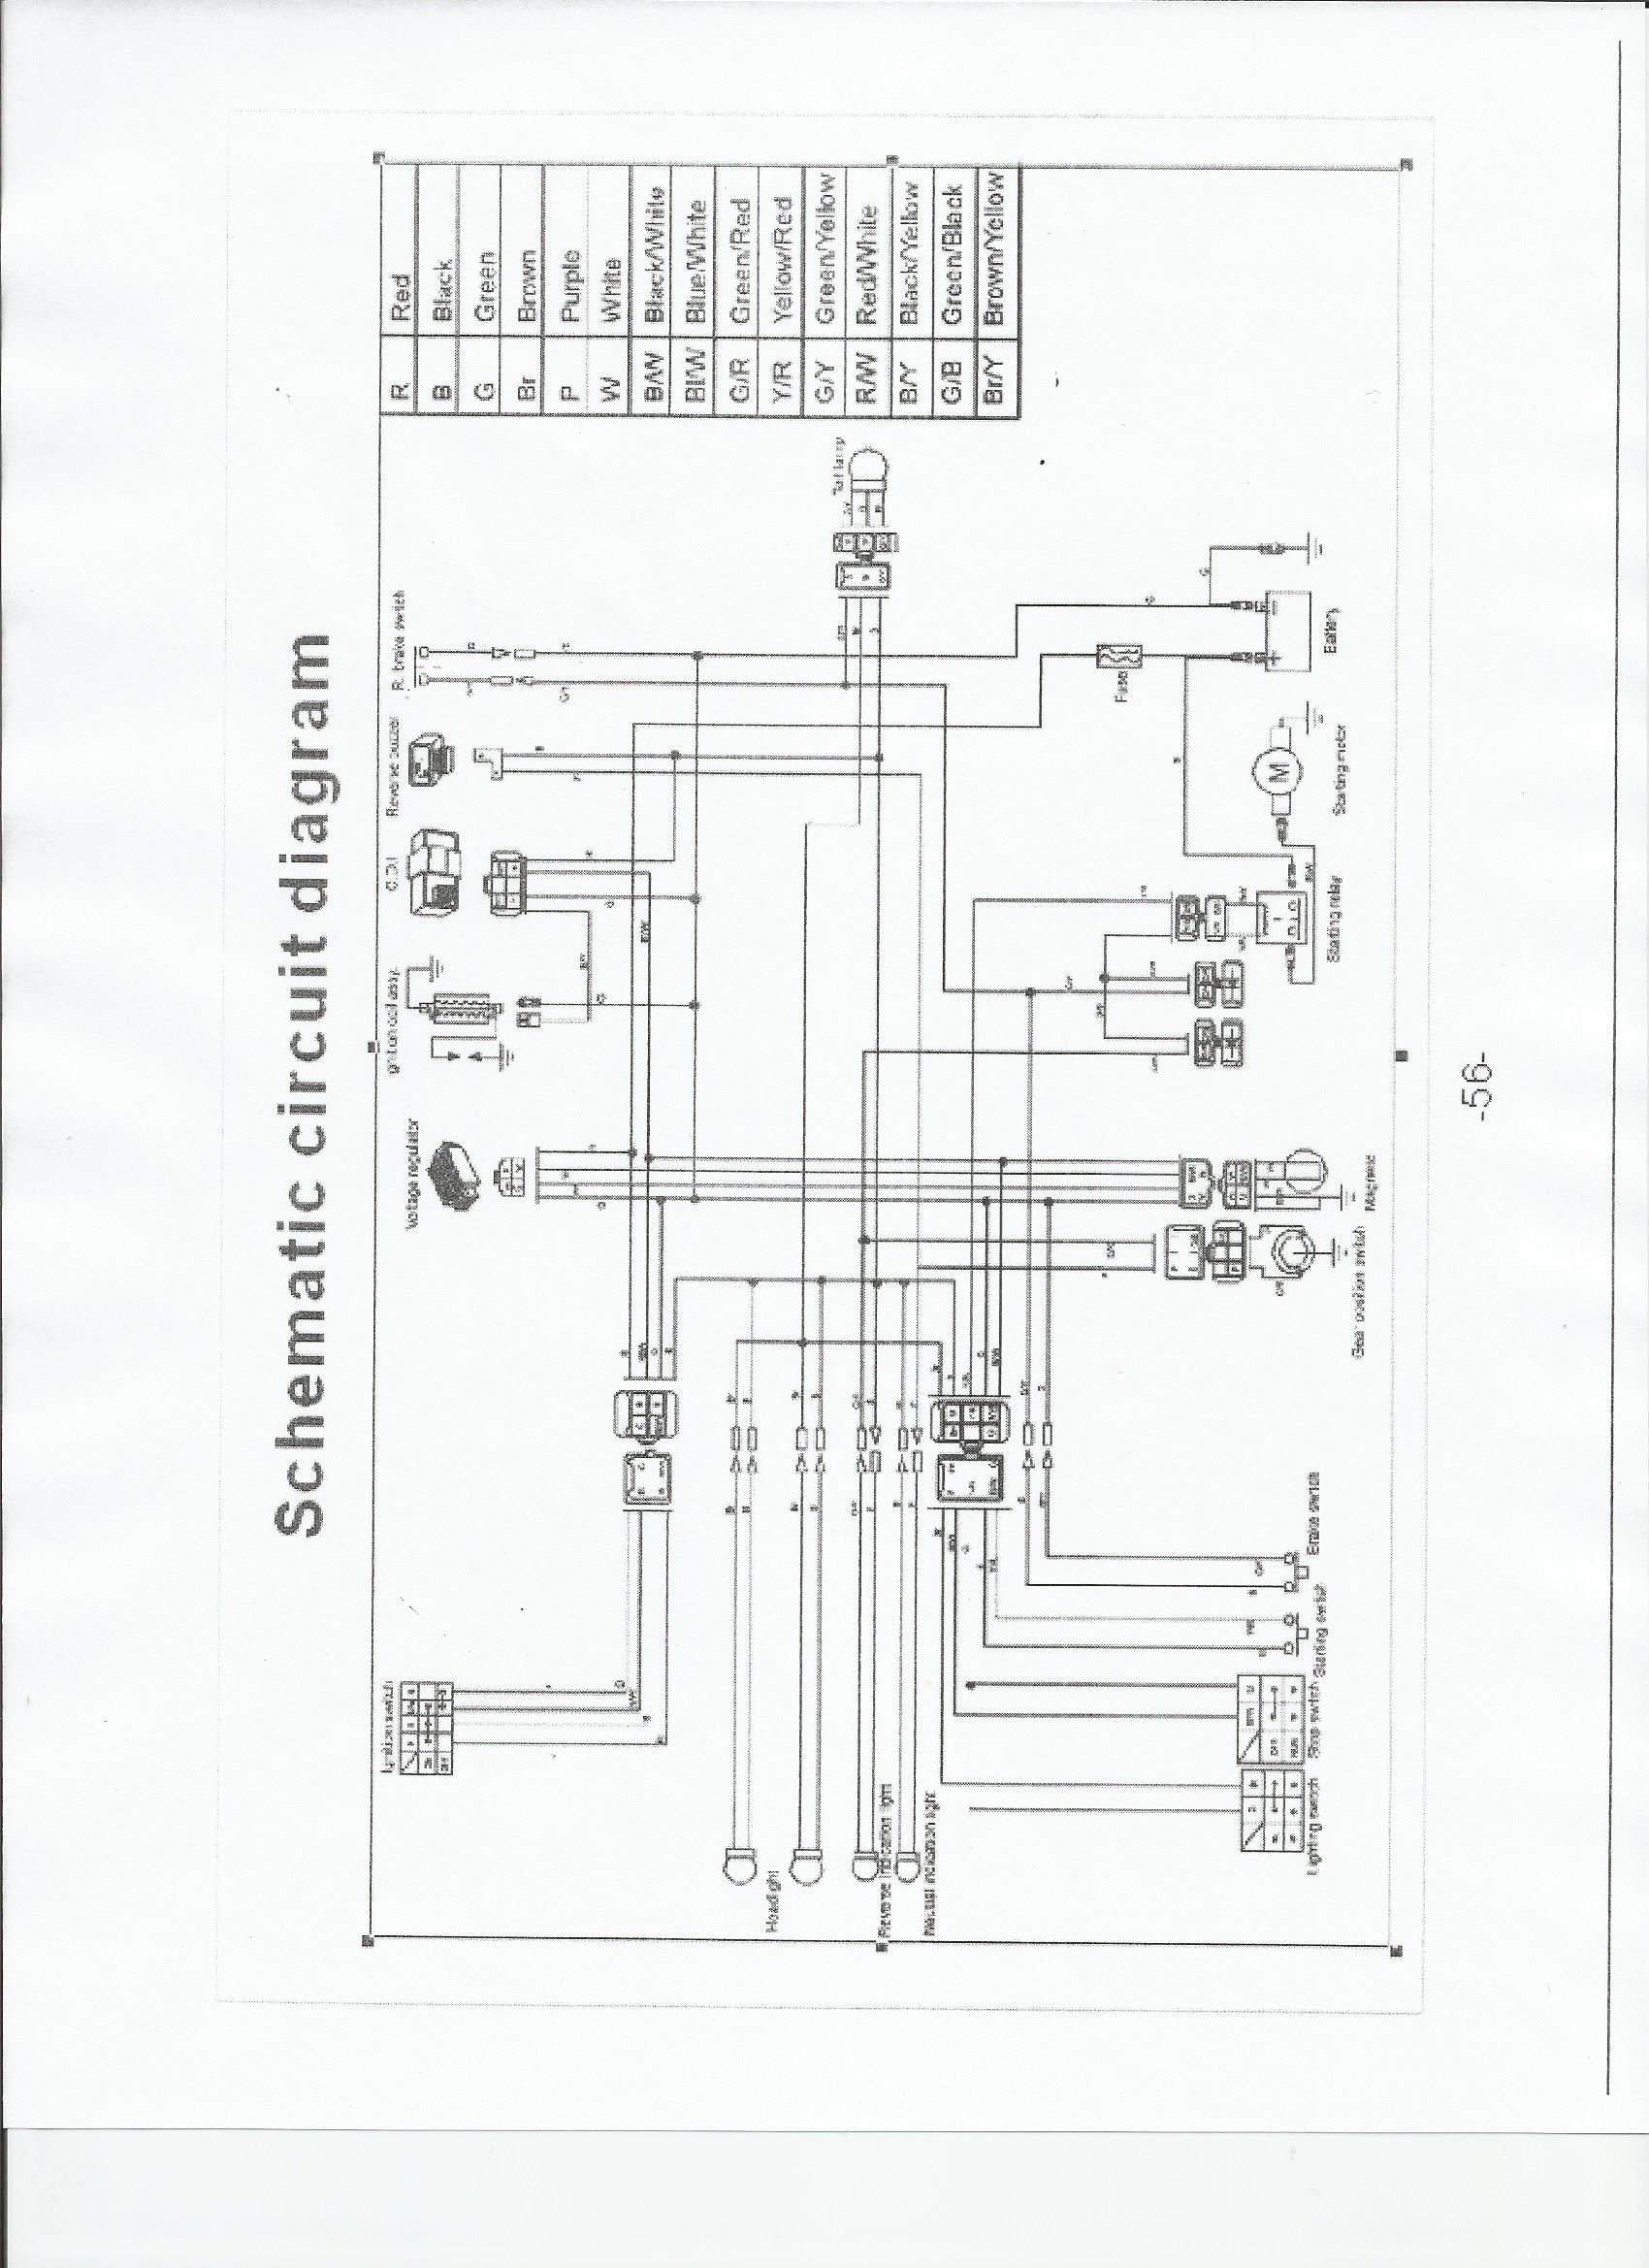 tao tao wiring schematic taotao mini and youth atv wiring schematic familygokarts support 2008 mini wiring diagram at n-0.co